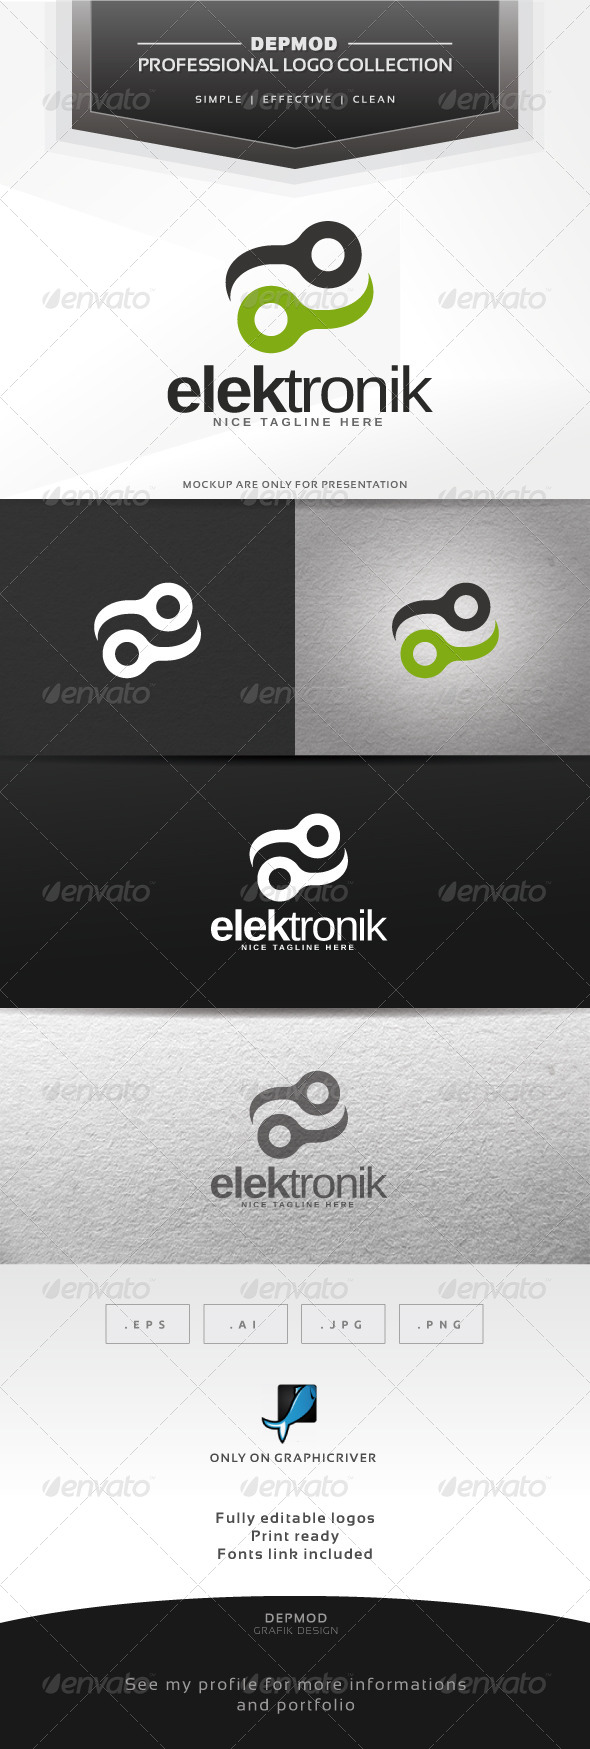 Elektronik Logo - Abstract Logo Templates